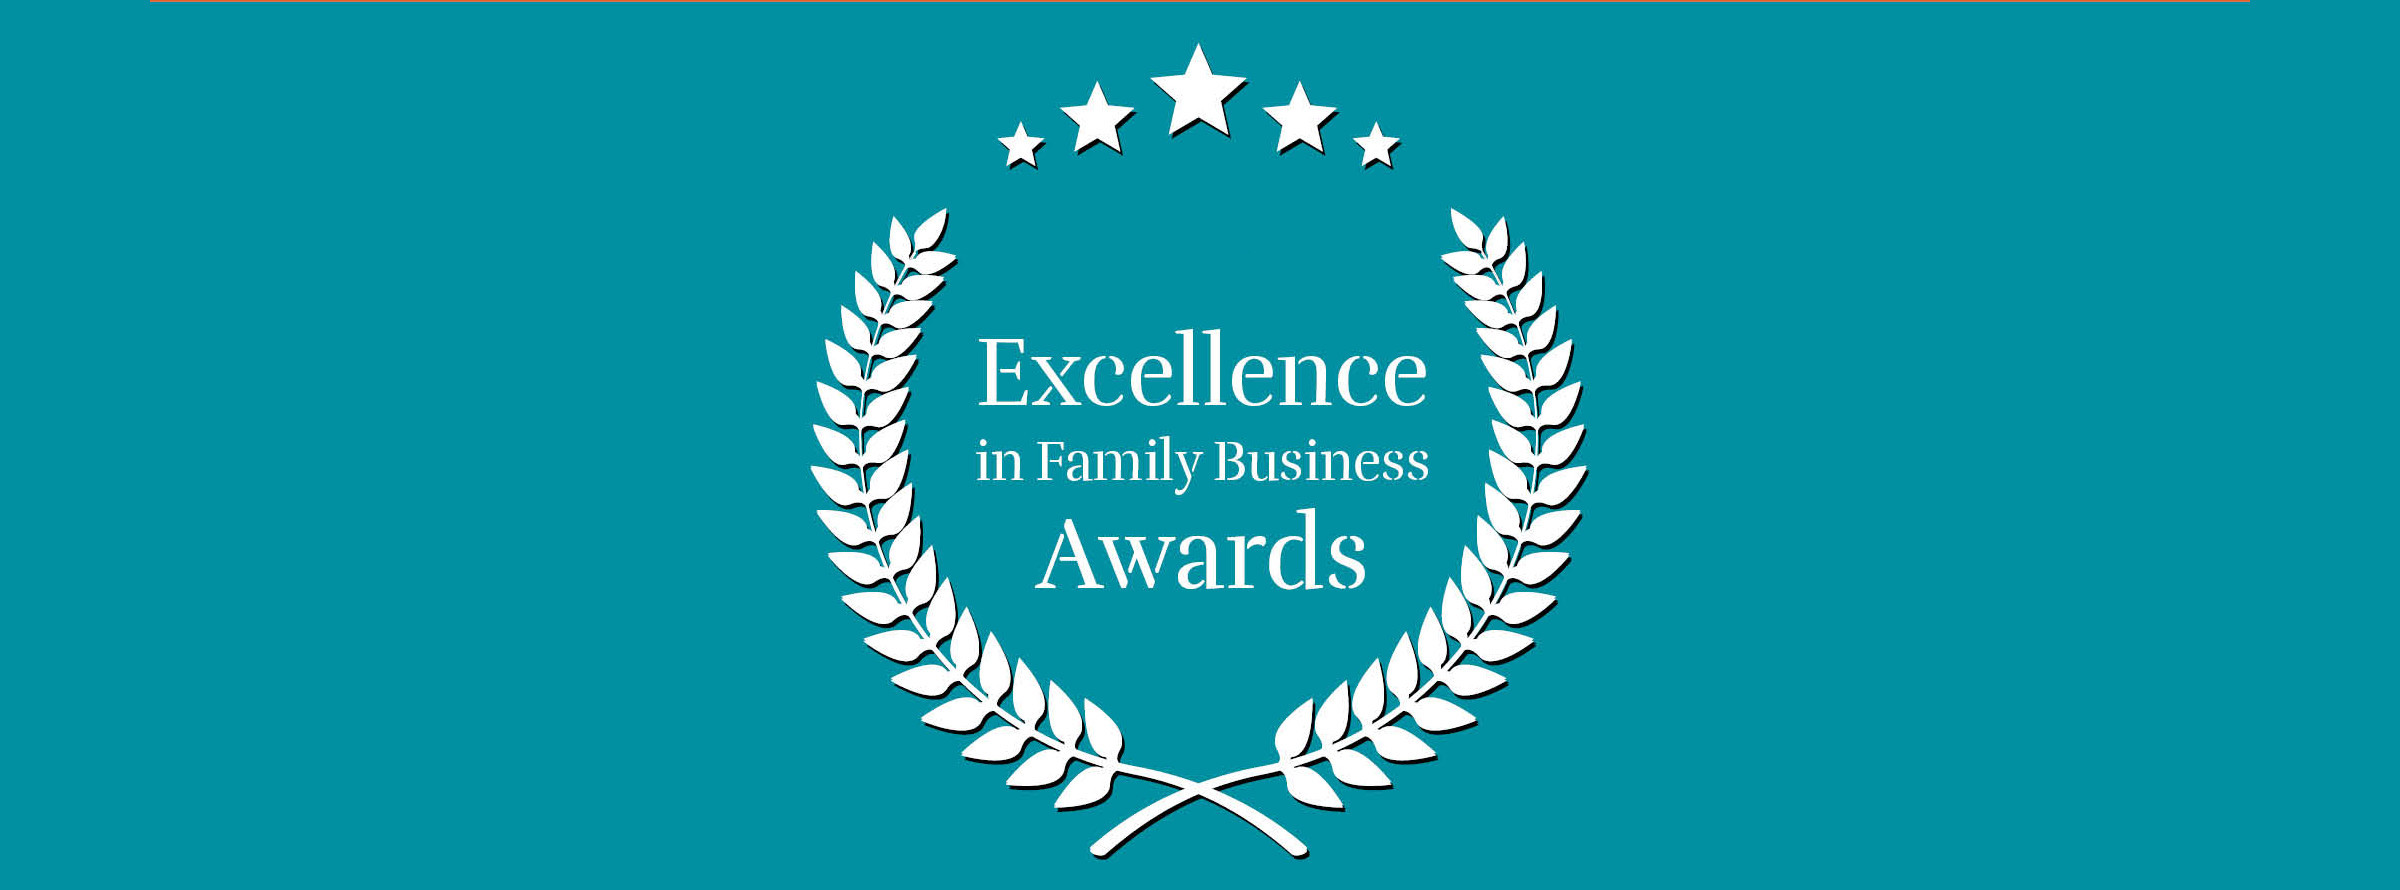 Excellence in Family Business Awards